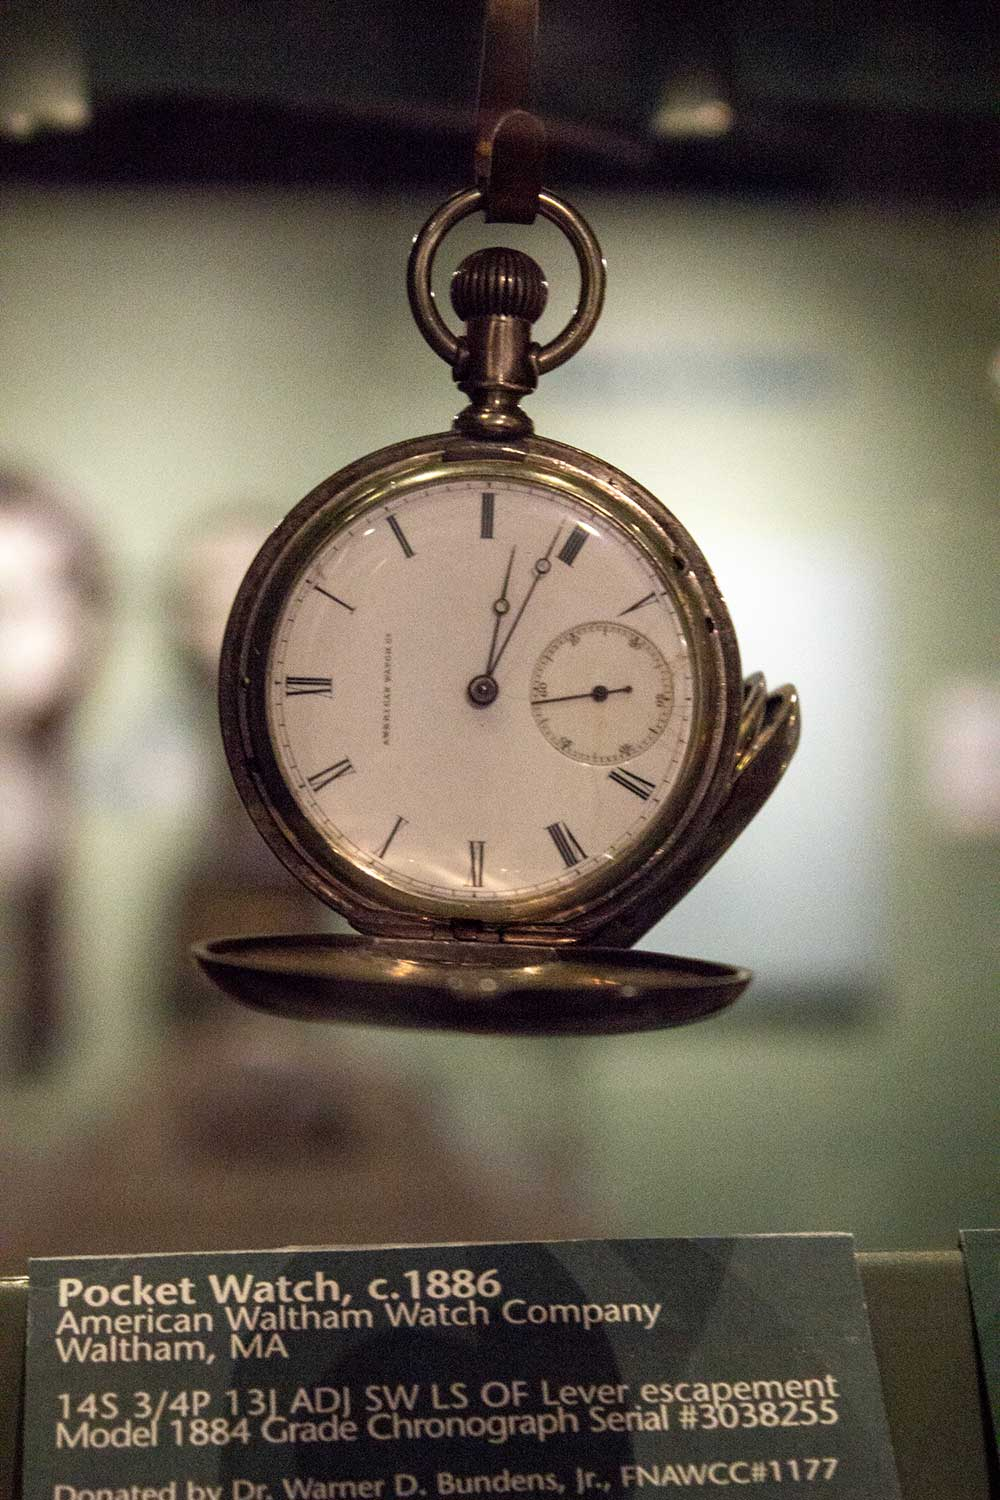 A pocket watch, ca. 1886, from the American Waltham Watch Company at the National Watch & Clock Museum